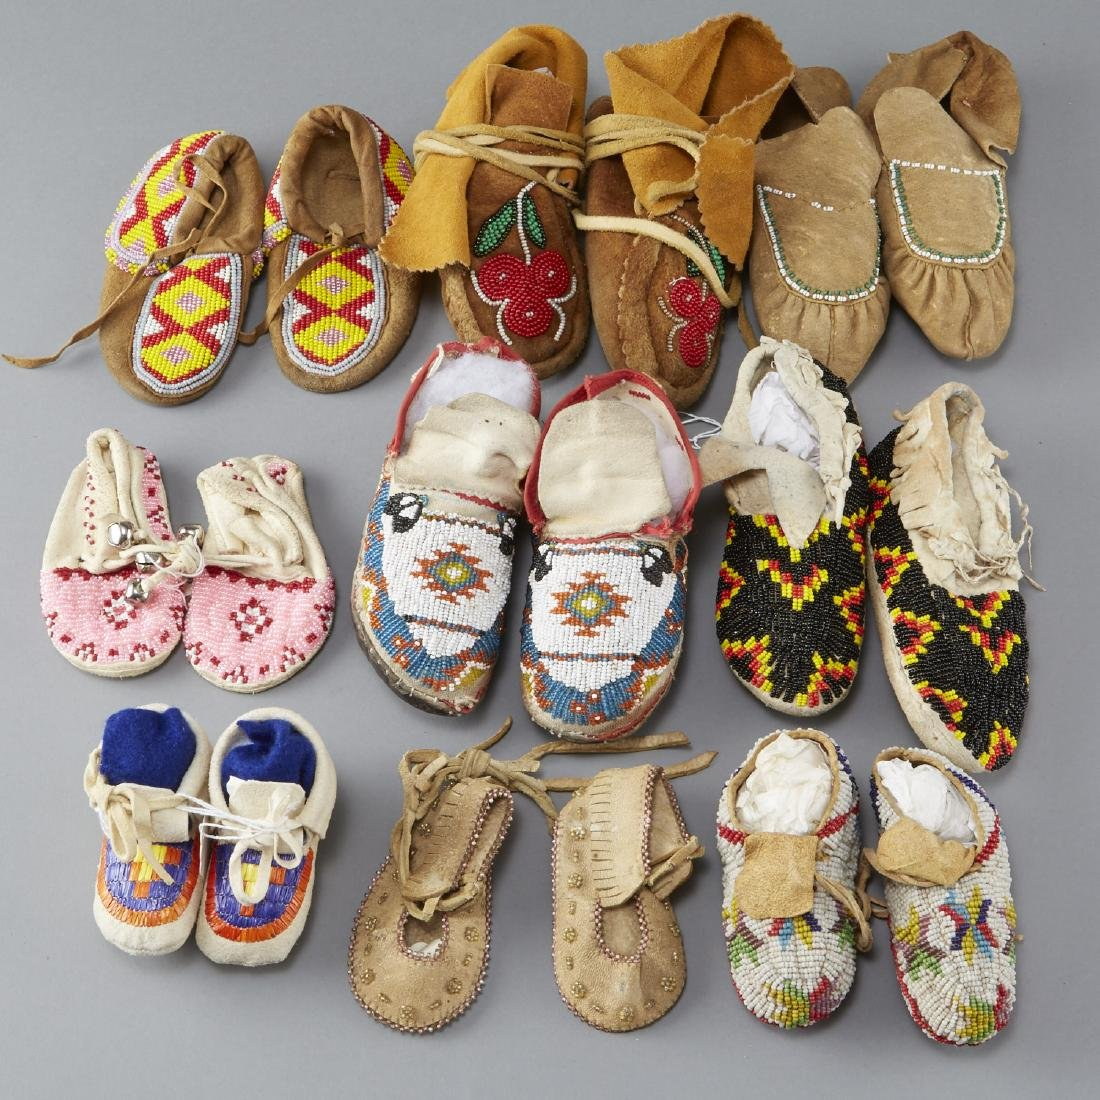 10 Pairs Beaded Children's Moccasins